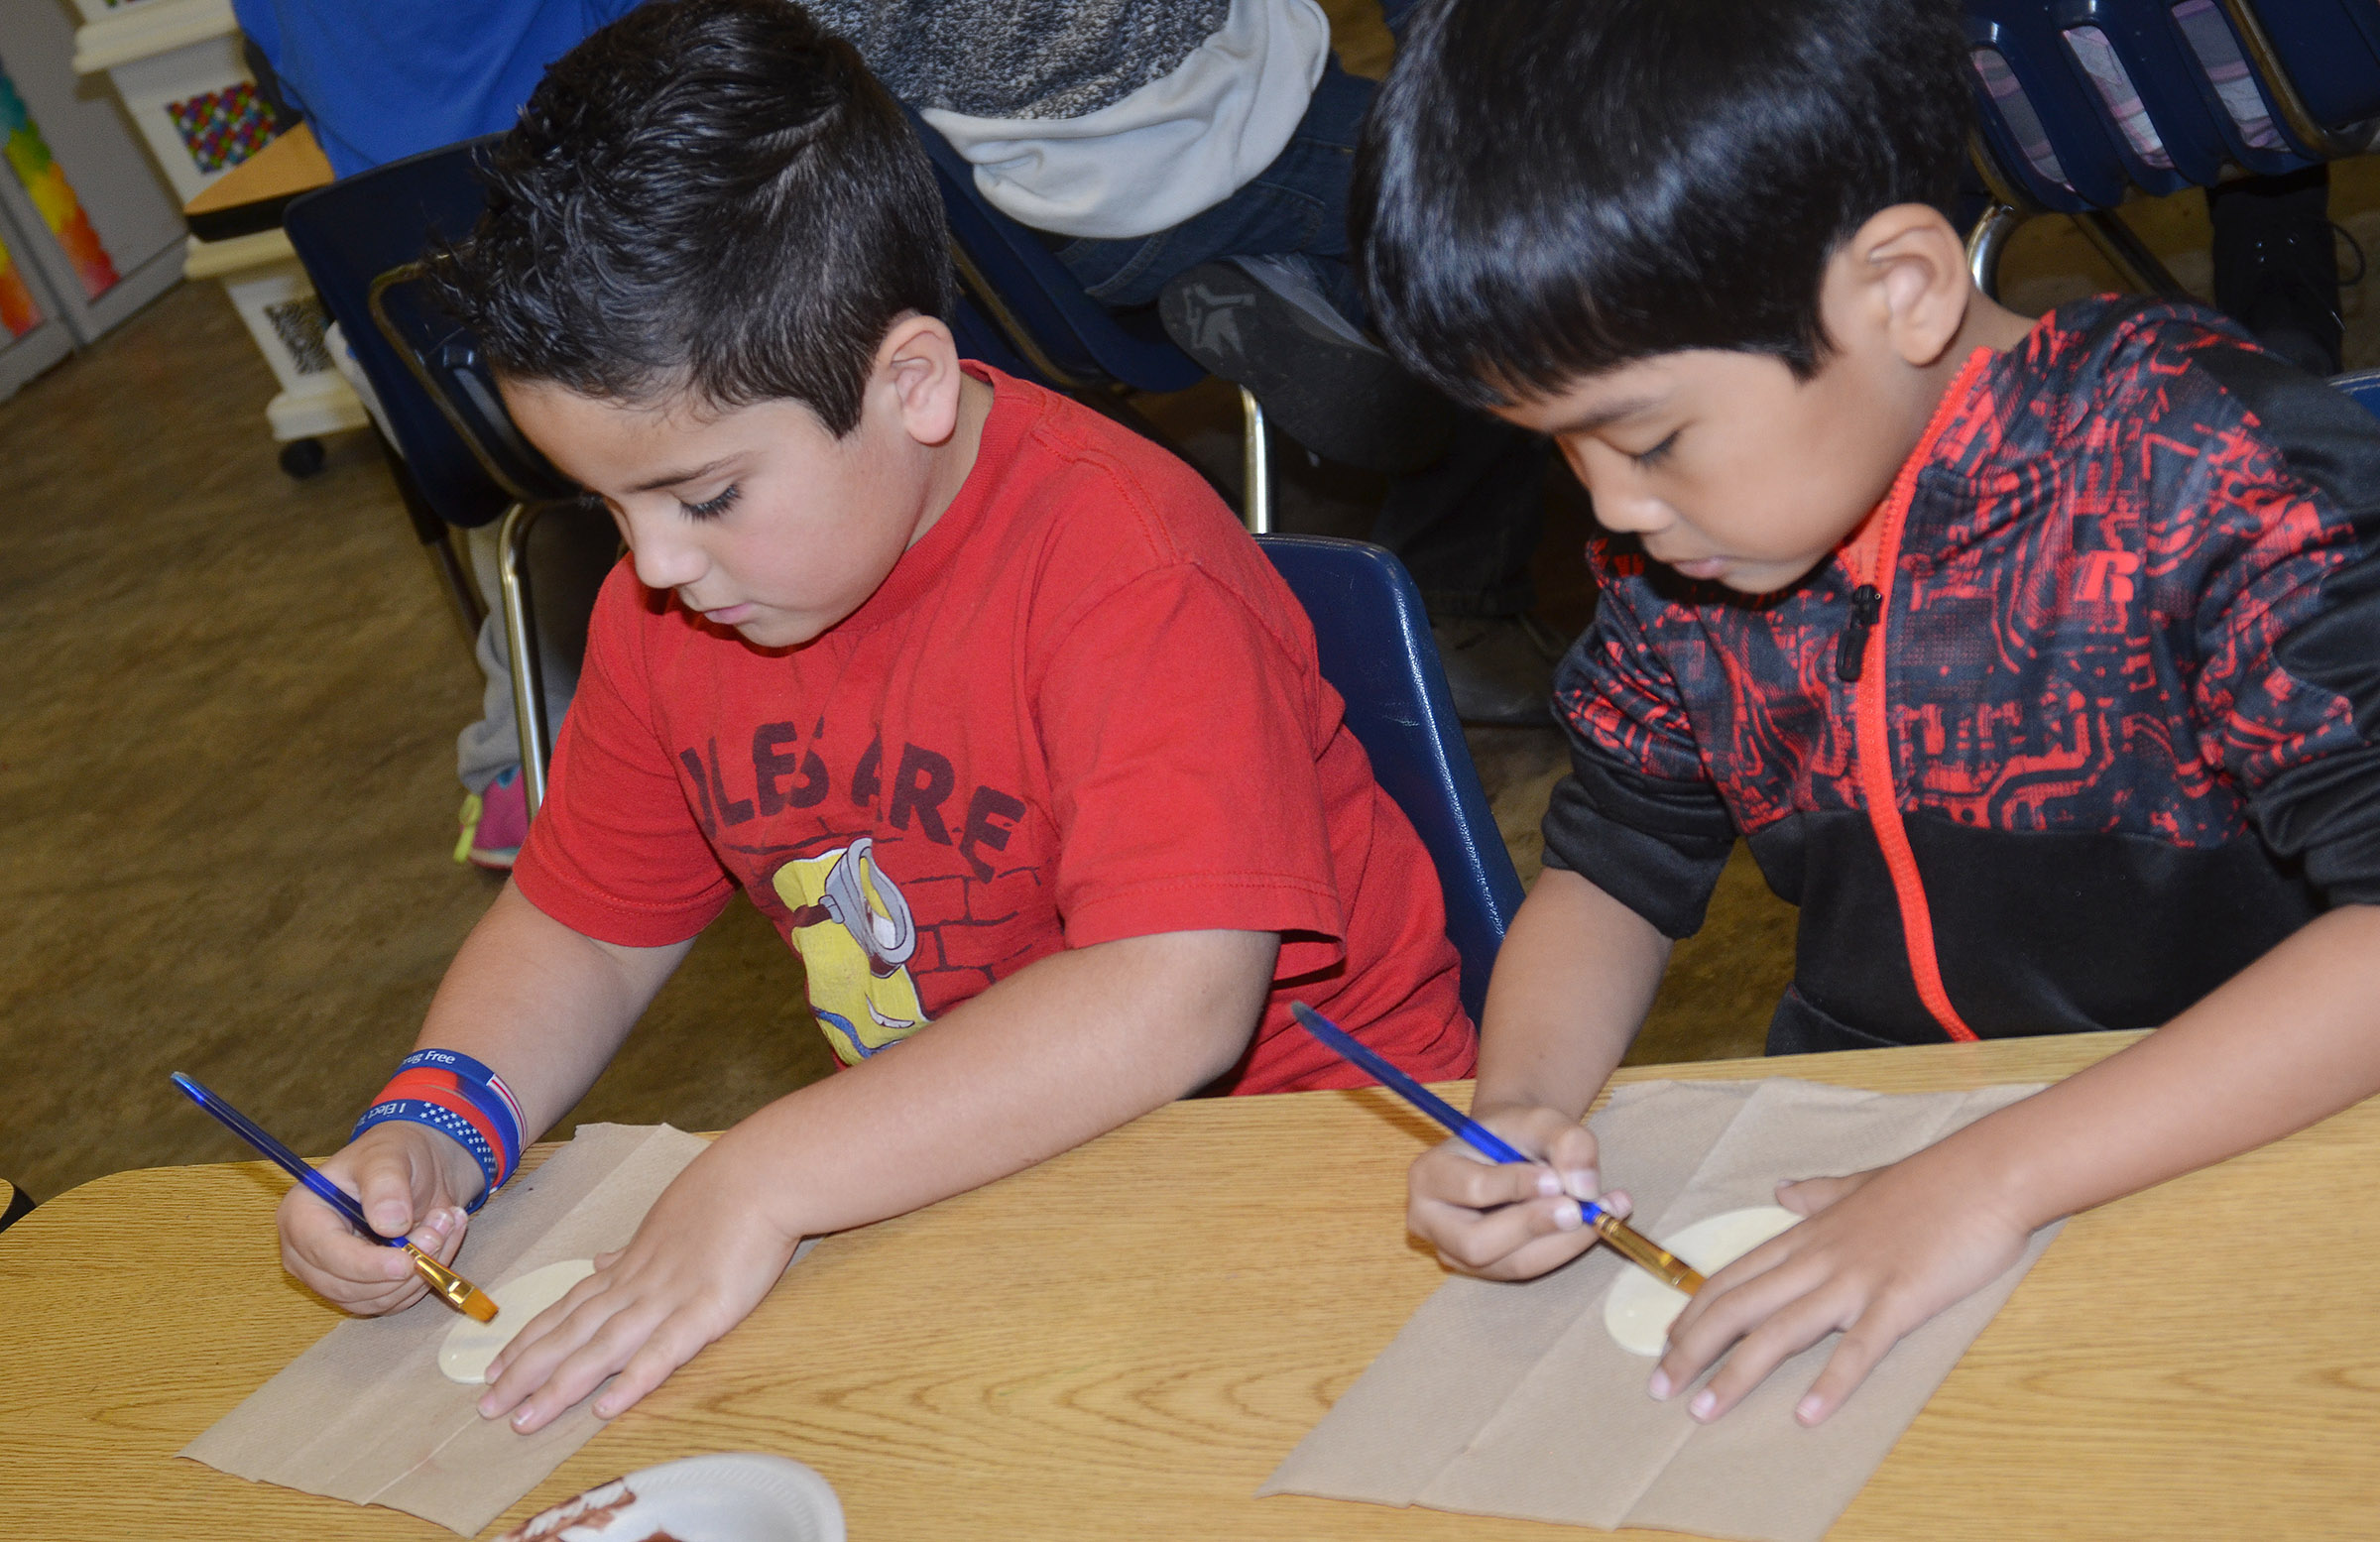 CES second-graders Nicholas Almeida, at left, and Zach Hak paint their reindeer ornaments.